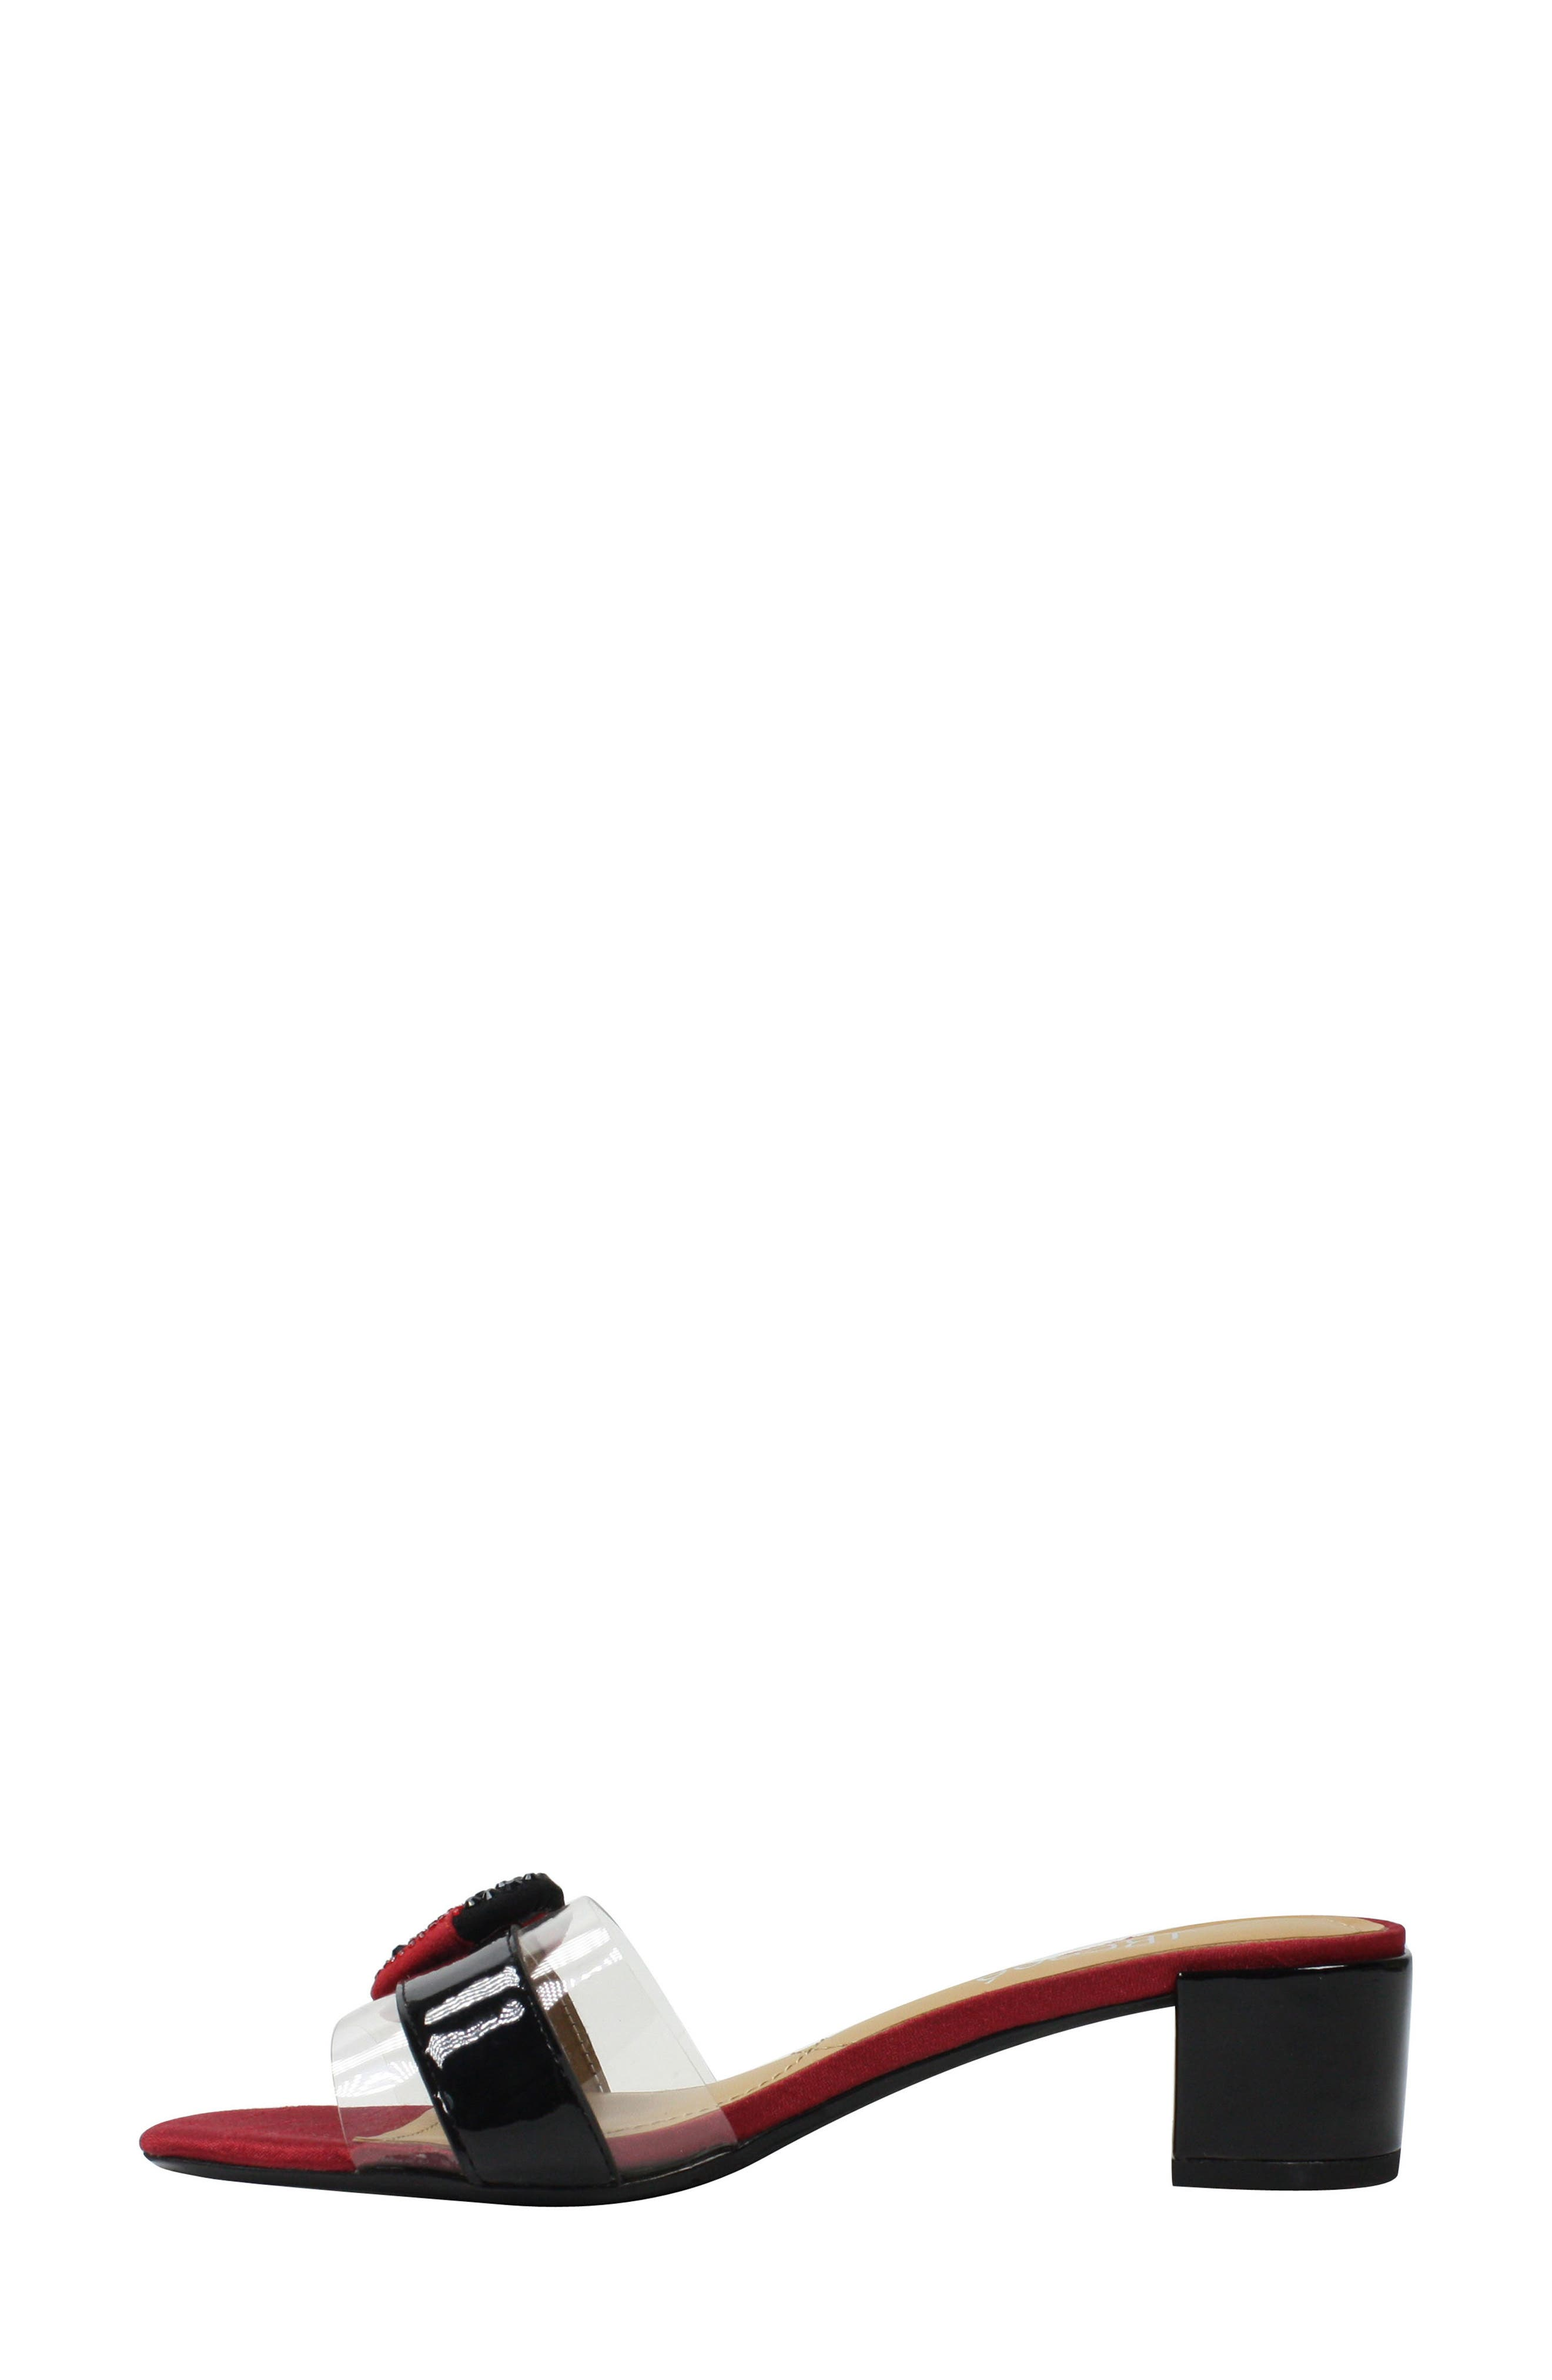 Etania Slide Sandal,                             Alternate thumbnail 7, color,                             BLACK/ RED/ CLEAR